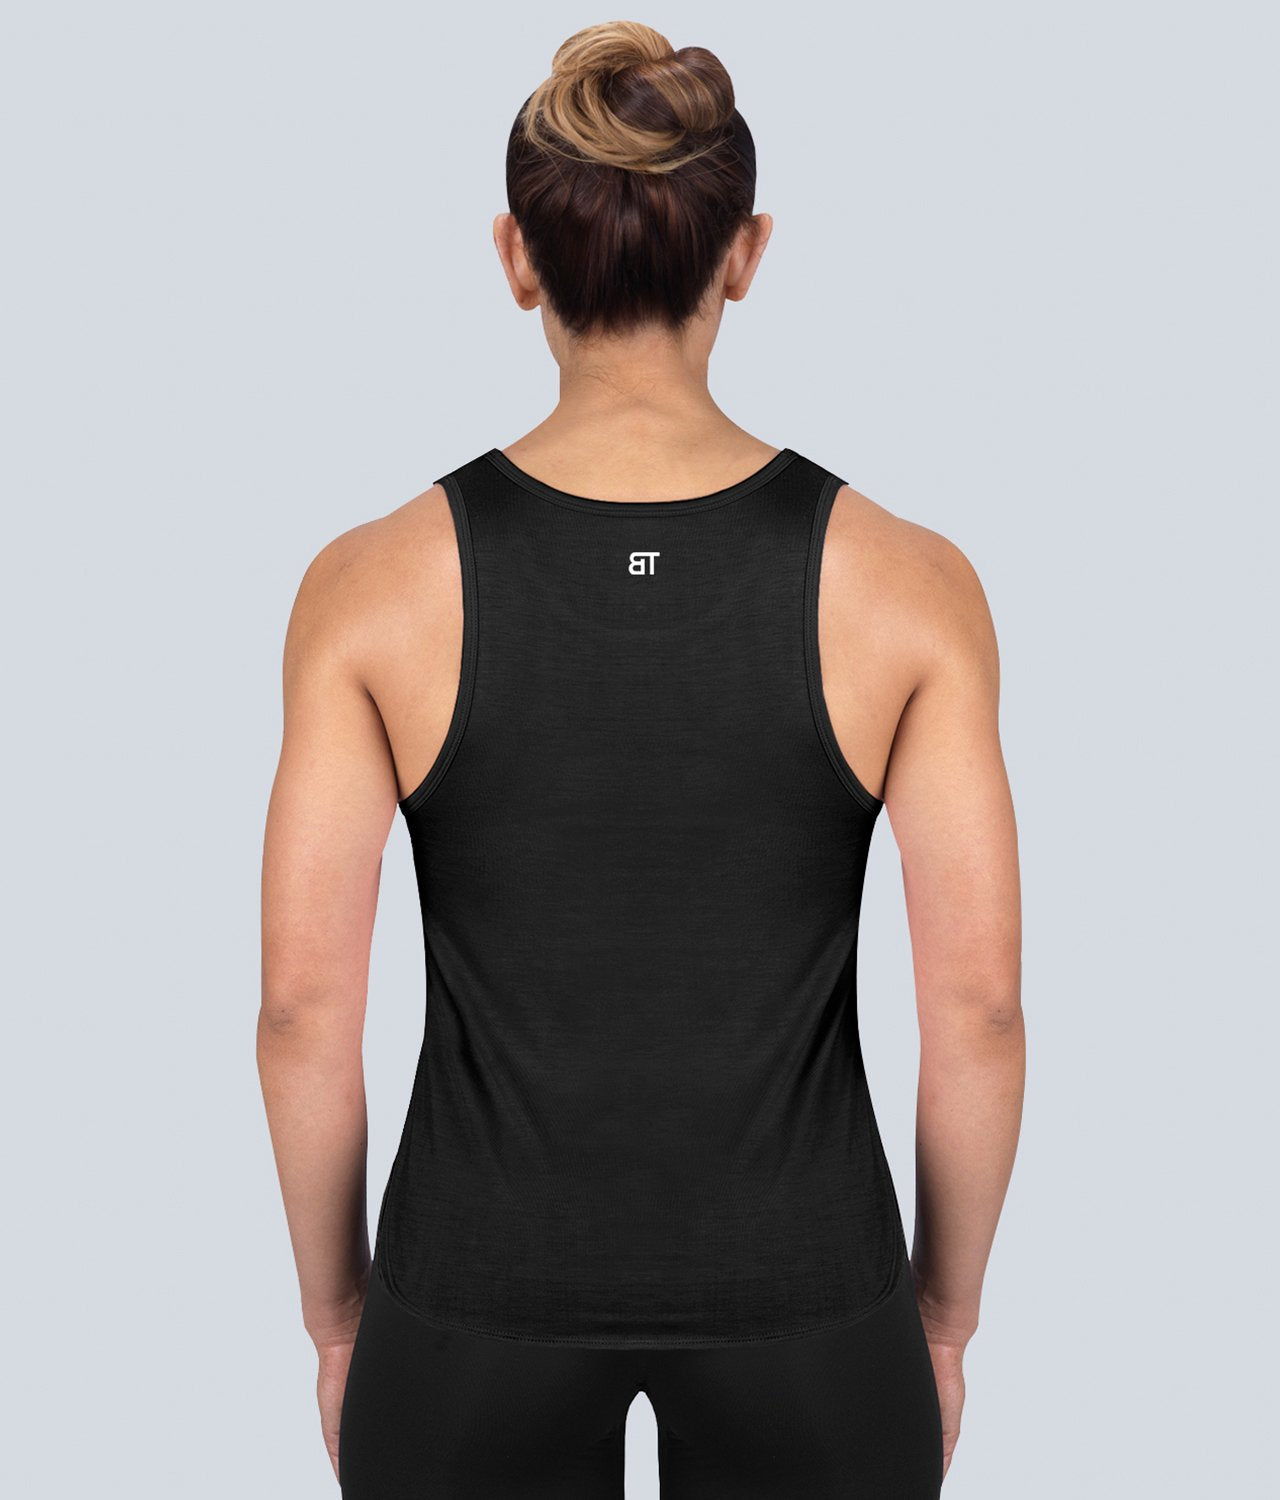 Born Tough United Kingdom Limitless Muscle Lightweight Soft Material Black Sheer Gym Workout Tank Top for Women